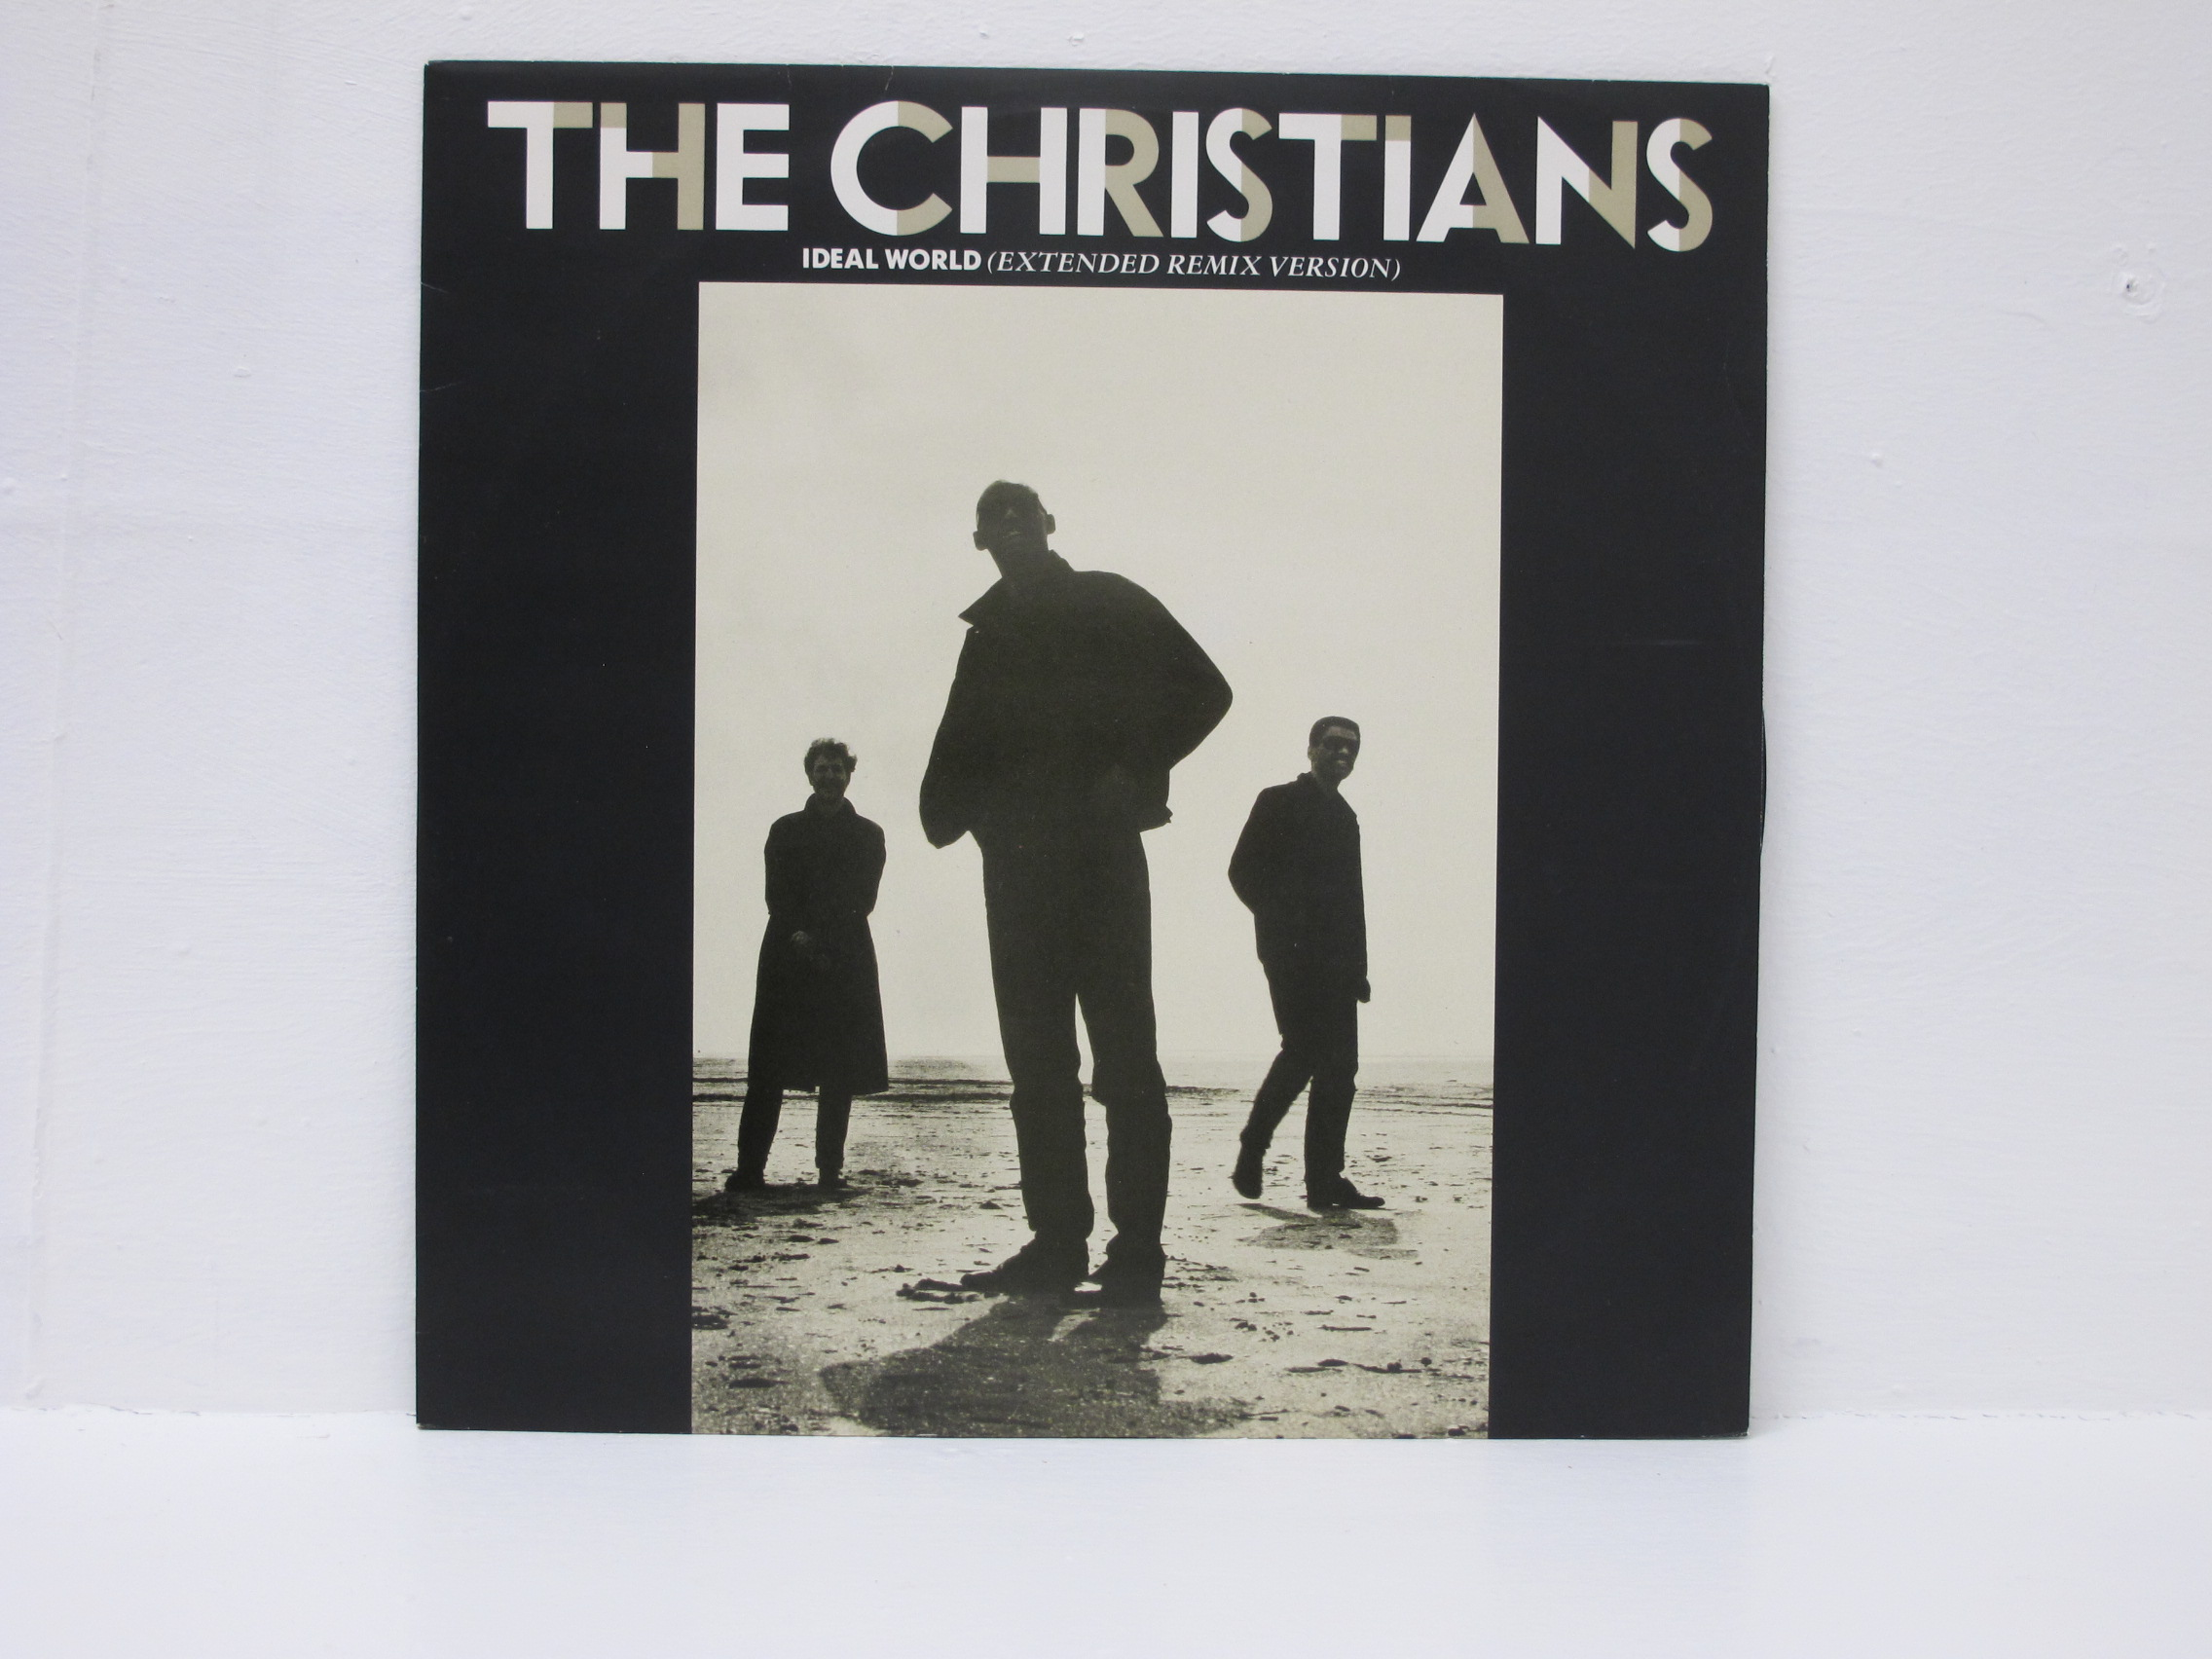 The Christians - Ideal World (Extended Remix Version)